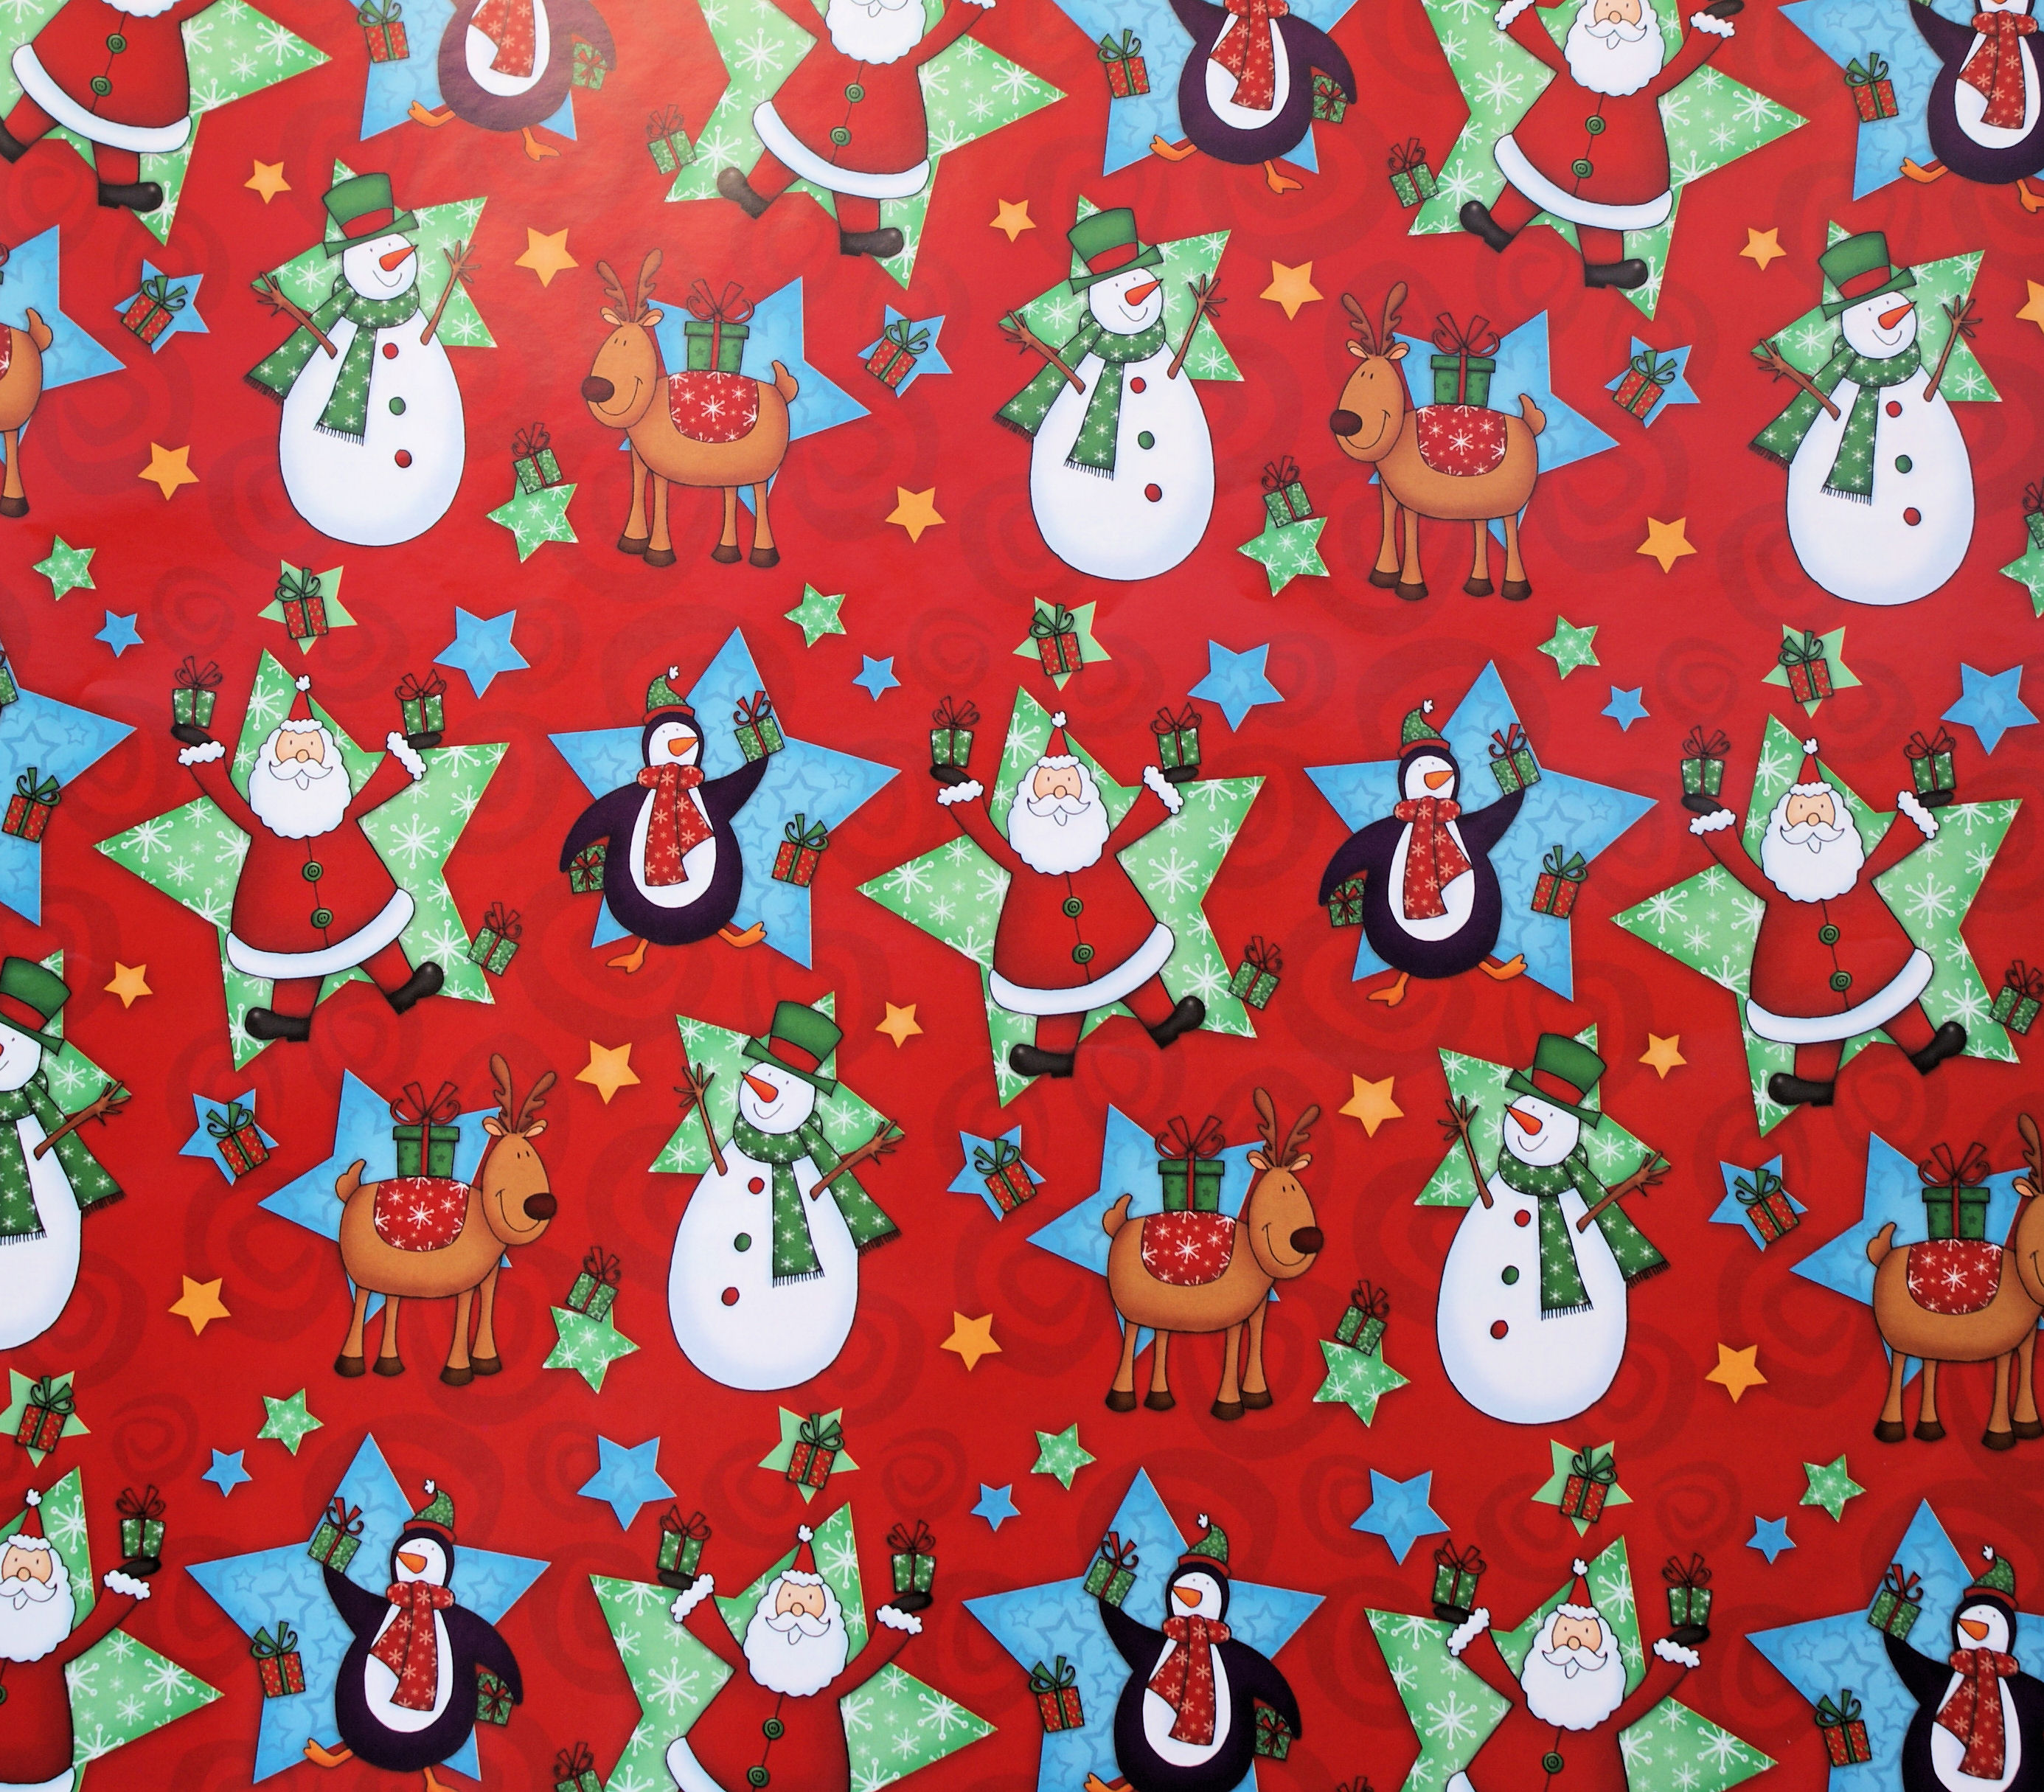 Cute Penguin Wallpaper Hd Wrapping Paper